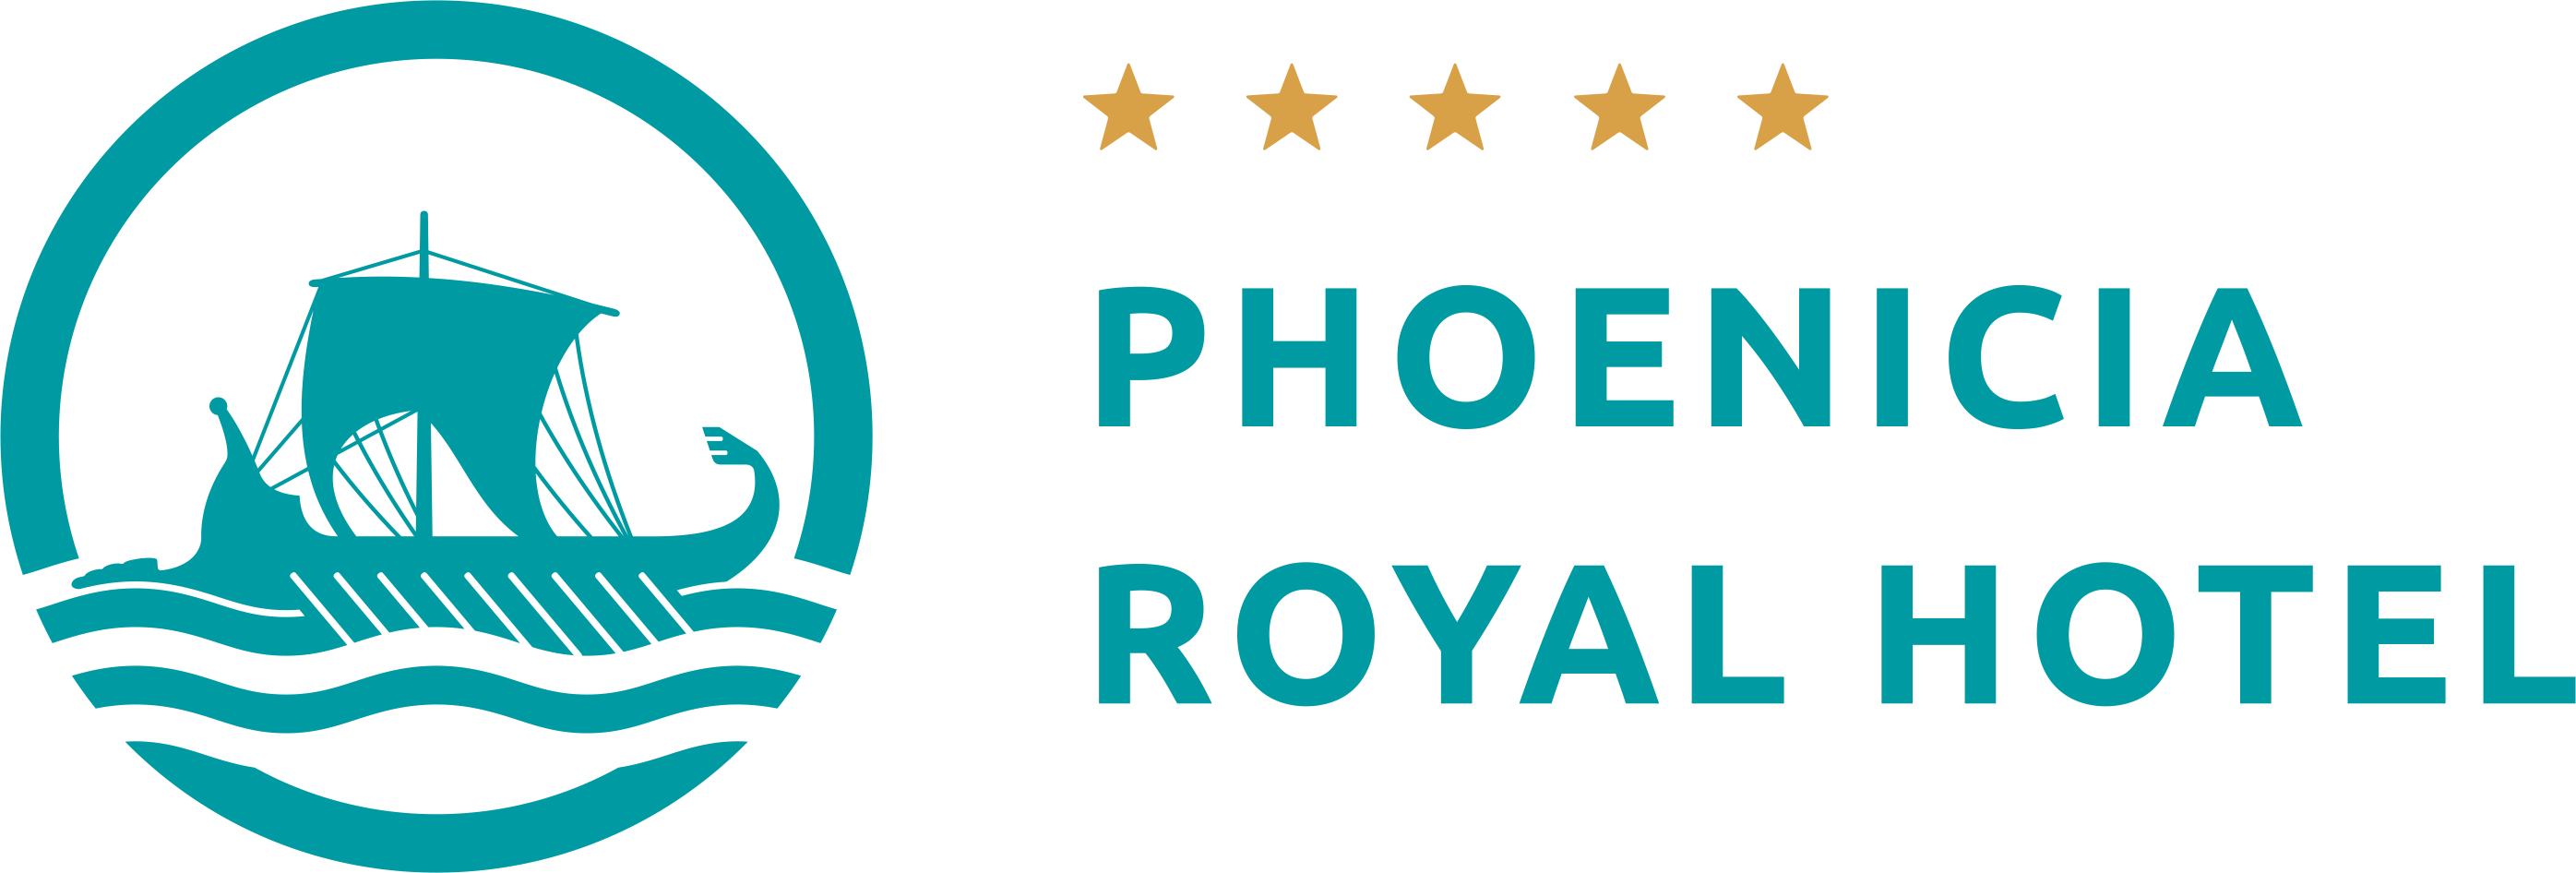 Phoenicia Royal